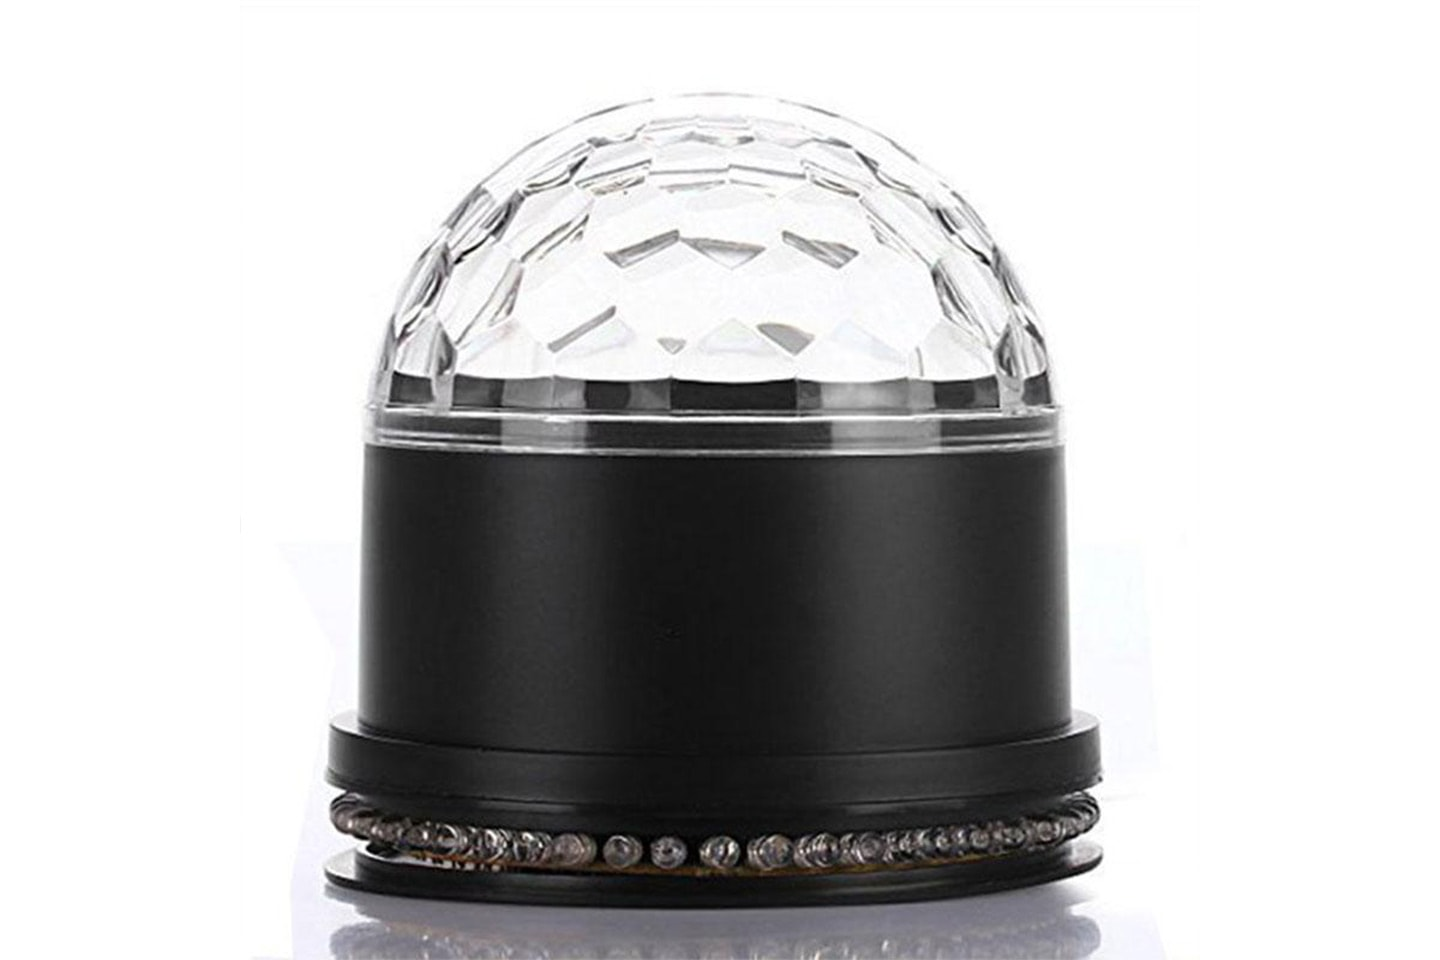 Roterende discoball